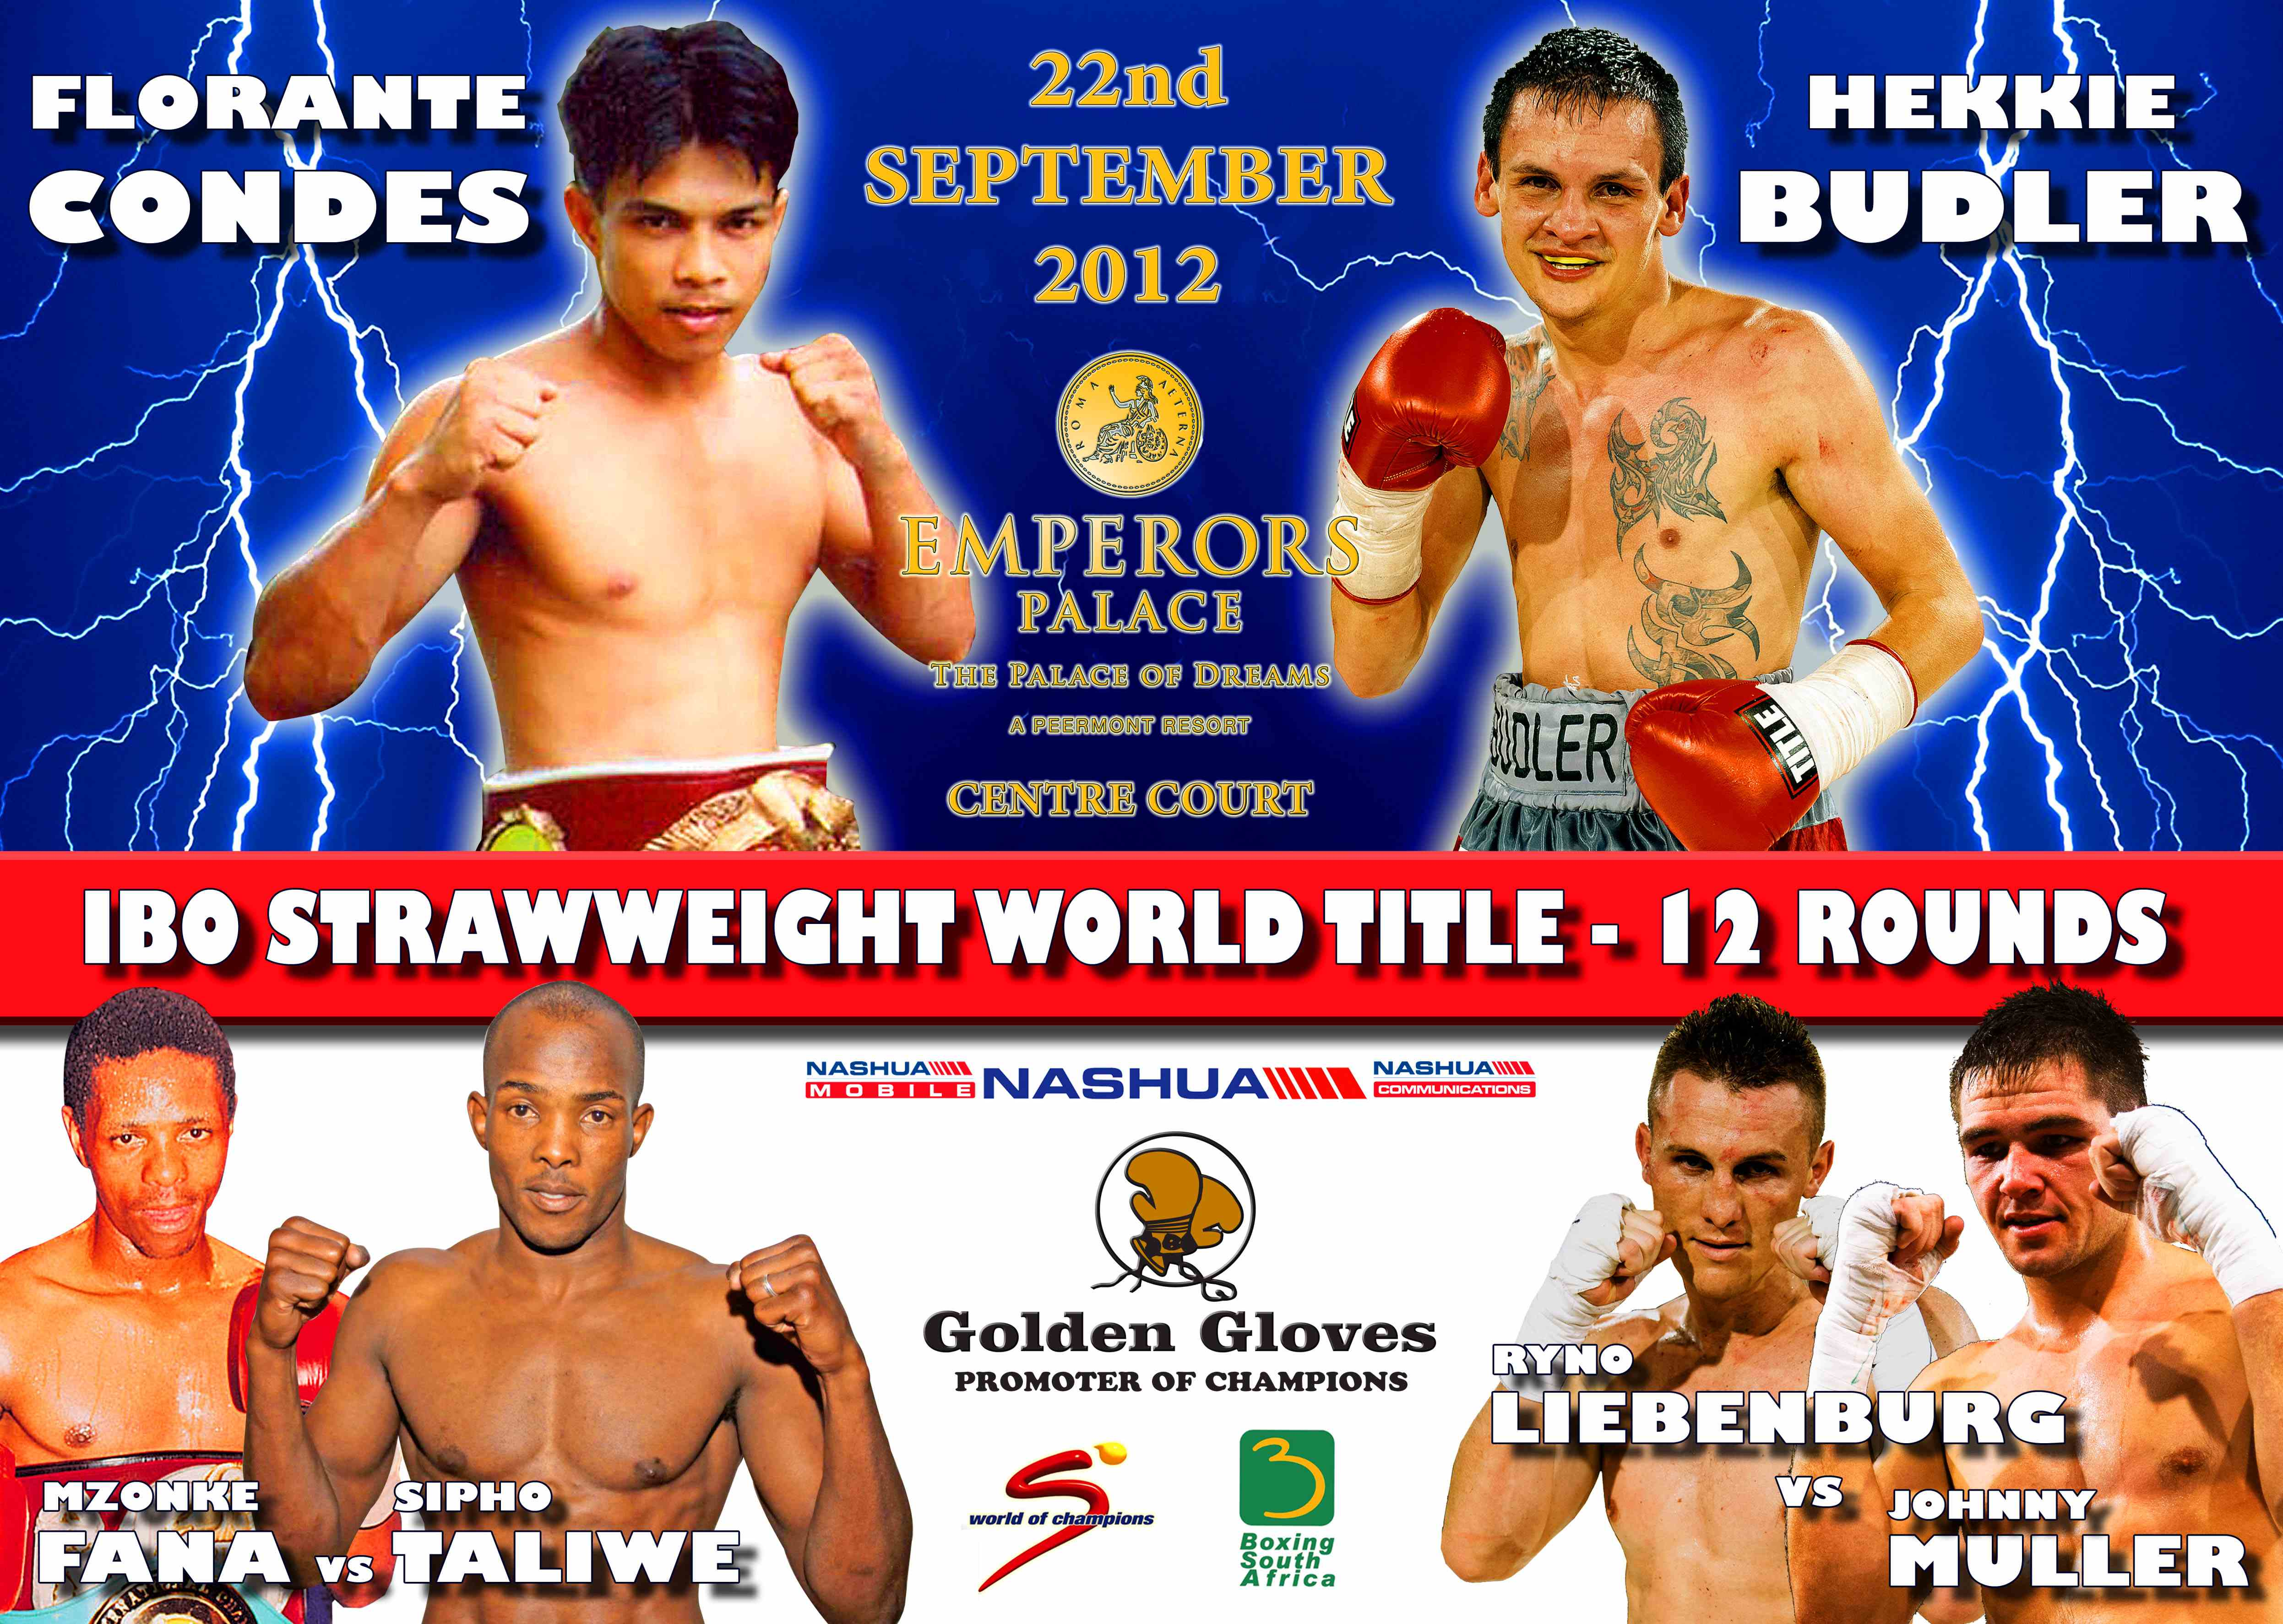 Hekkie Budler vs Florante Condes Bout Card - African Ring